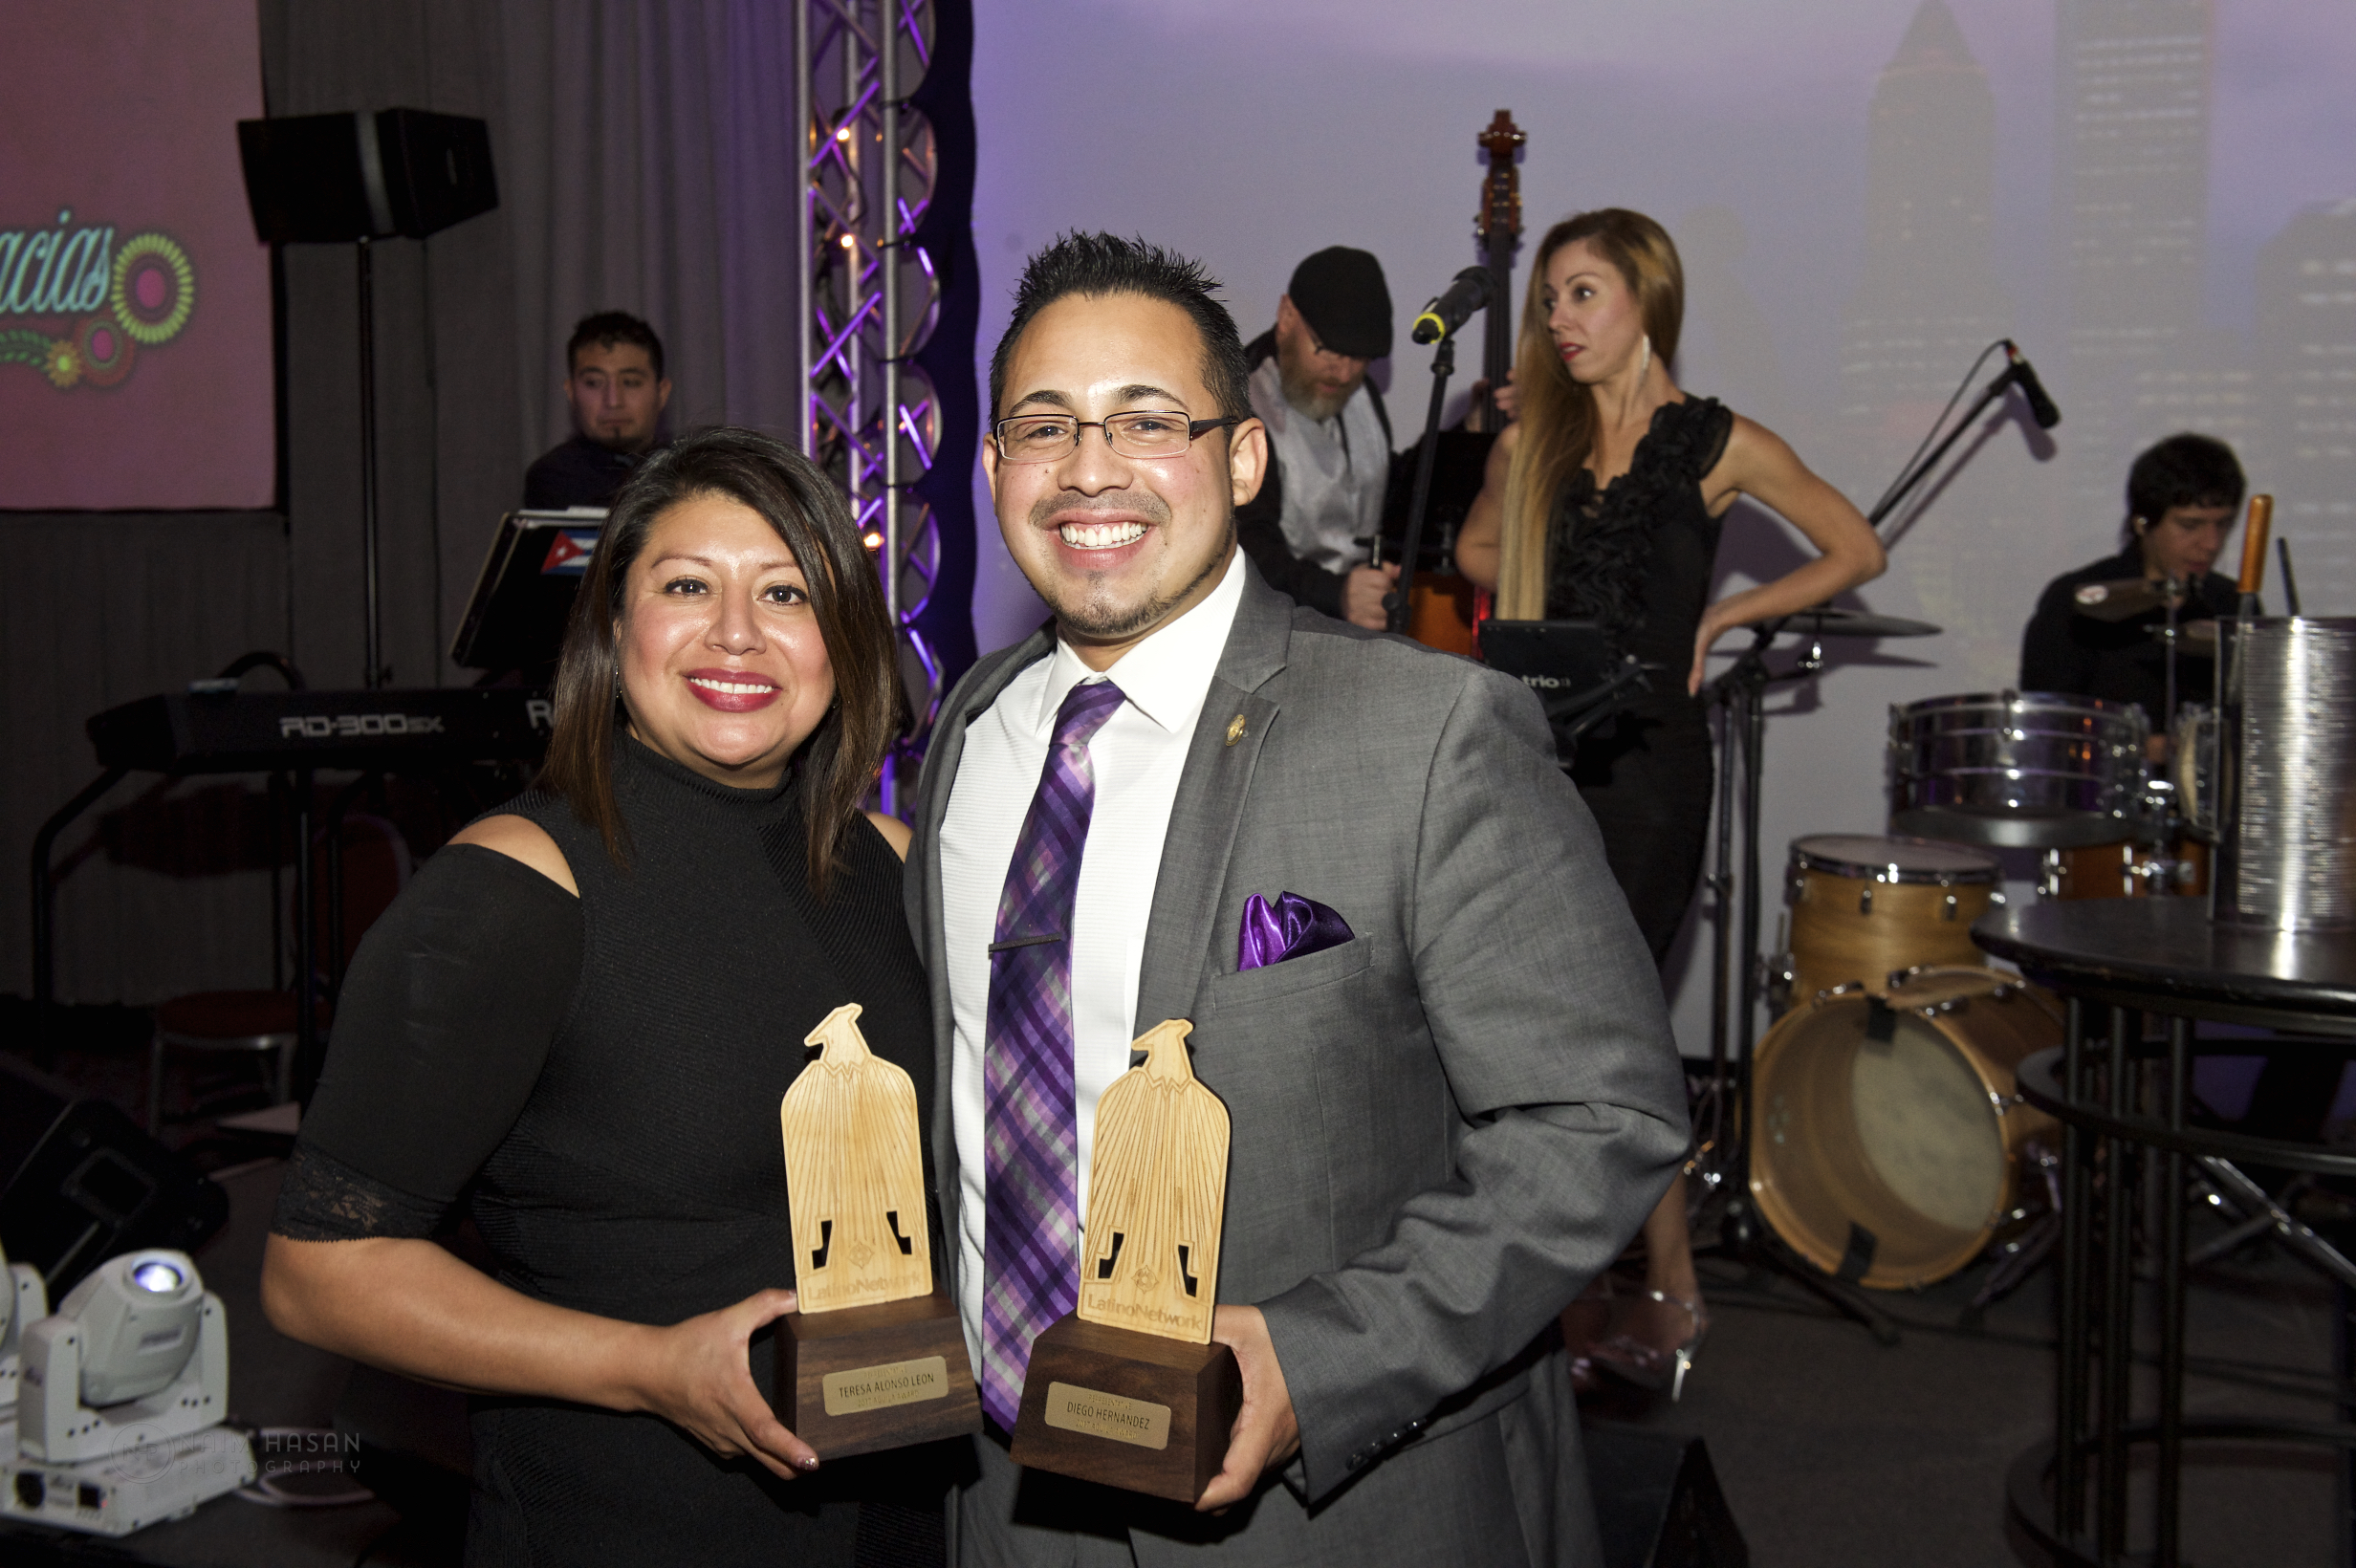 We were incredibly proud to have awarded Oregon State Representatives Diego Hernandez and Teresa Alonso Leon with the Aguila Award this year. Their service to our community and the state of Oregon is incredible! Thank you for all the work you do, Diego and Teresa!